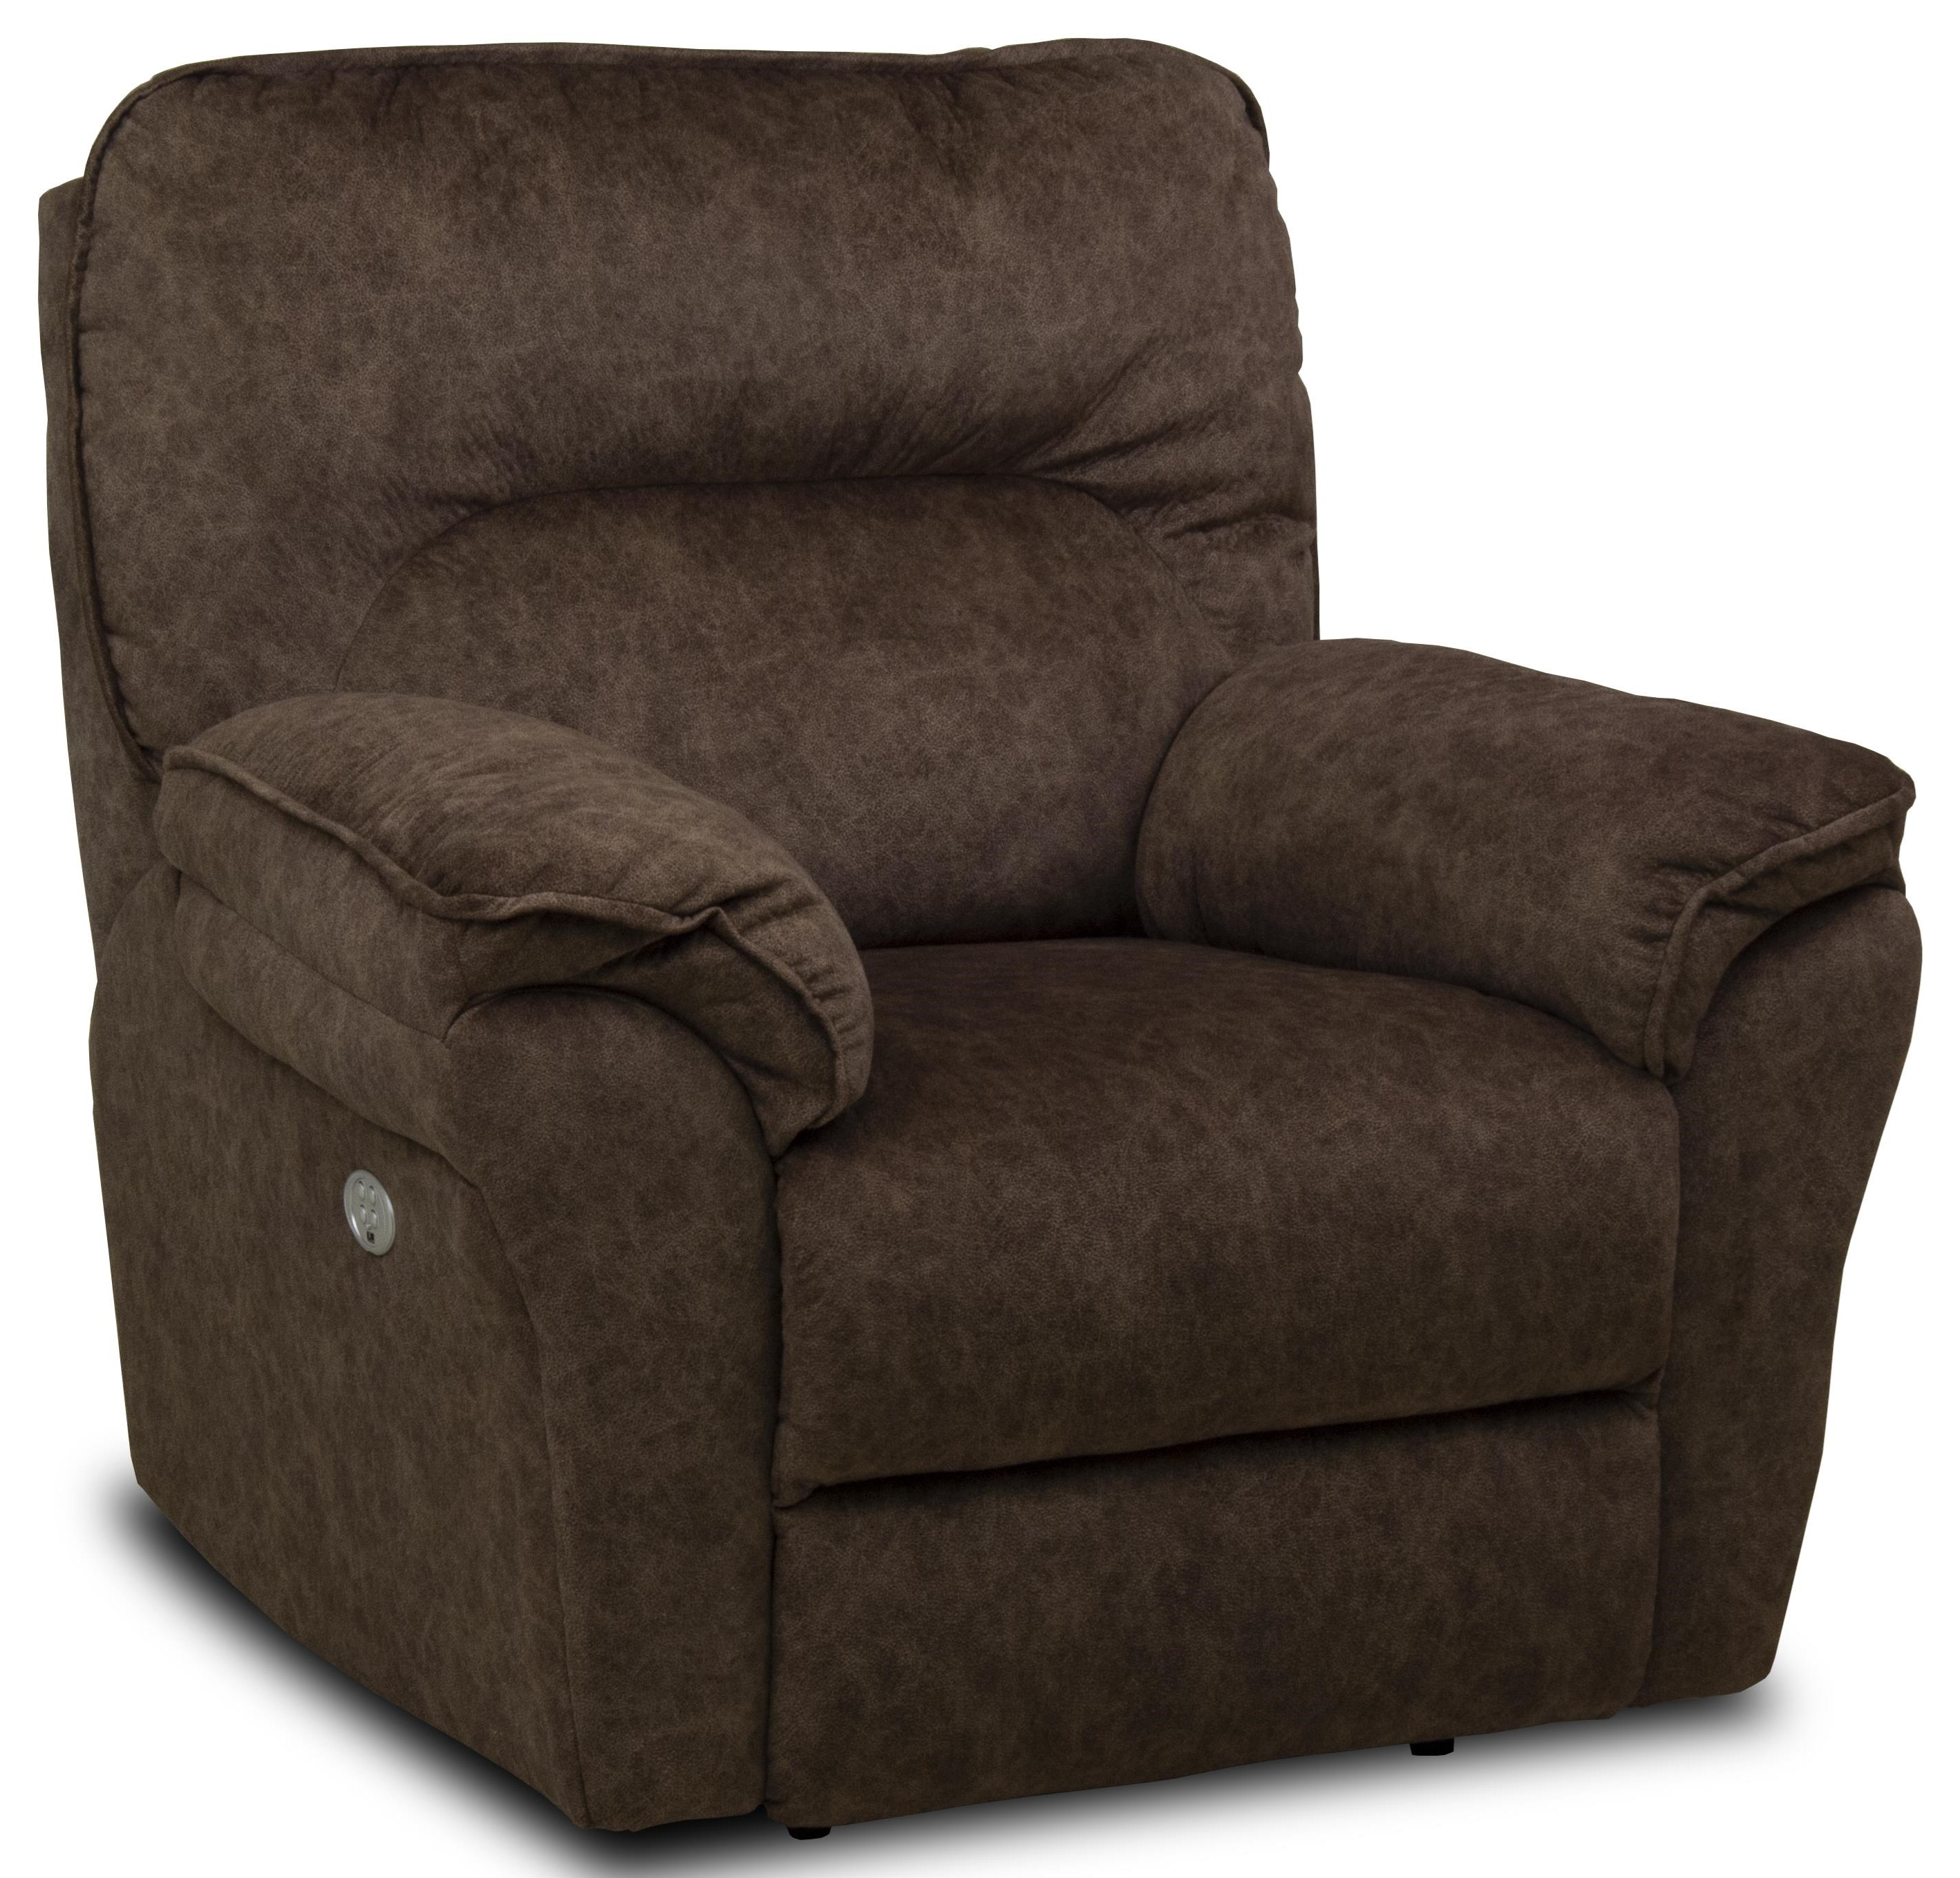 Full Ride Power Headrest Wallhugger Recliner by Southern Motion at Ruby Gordon Home